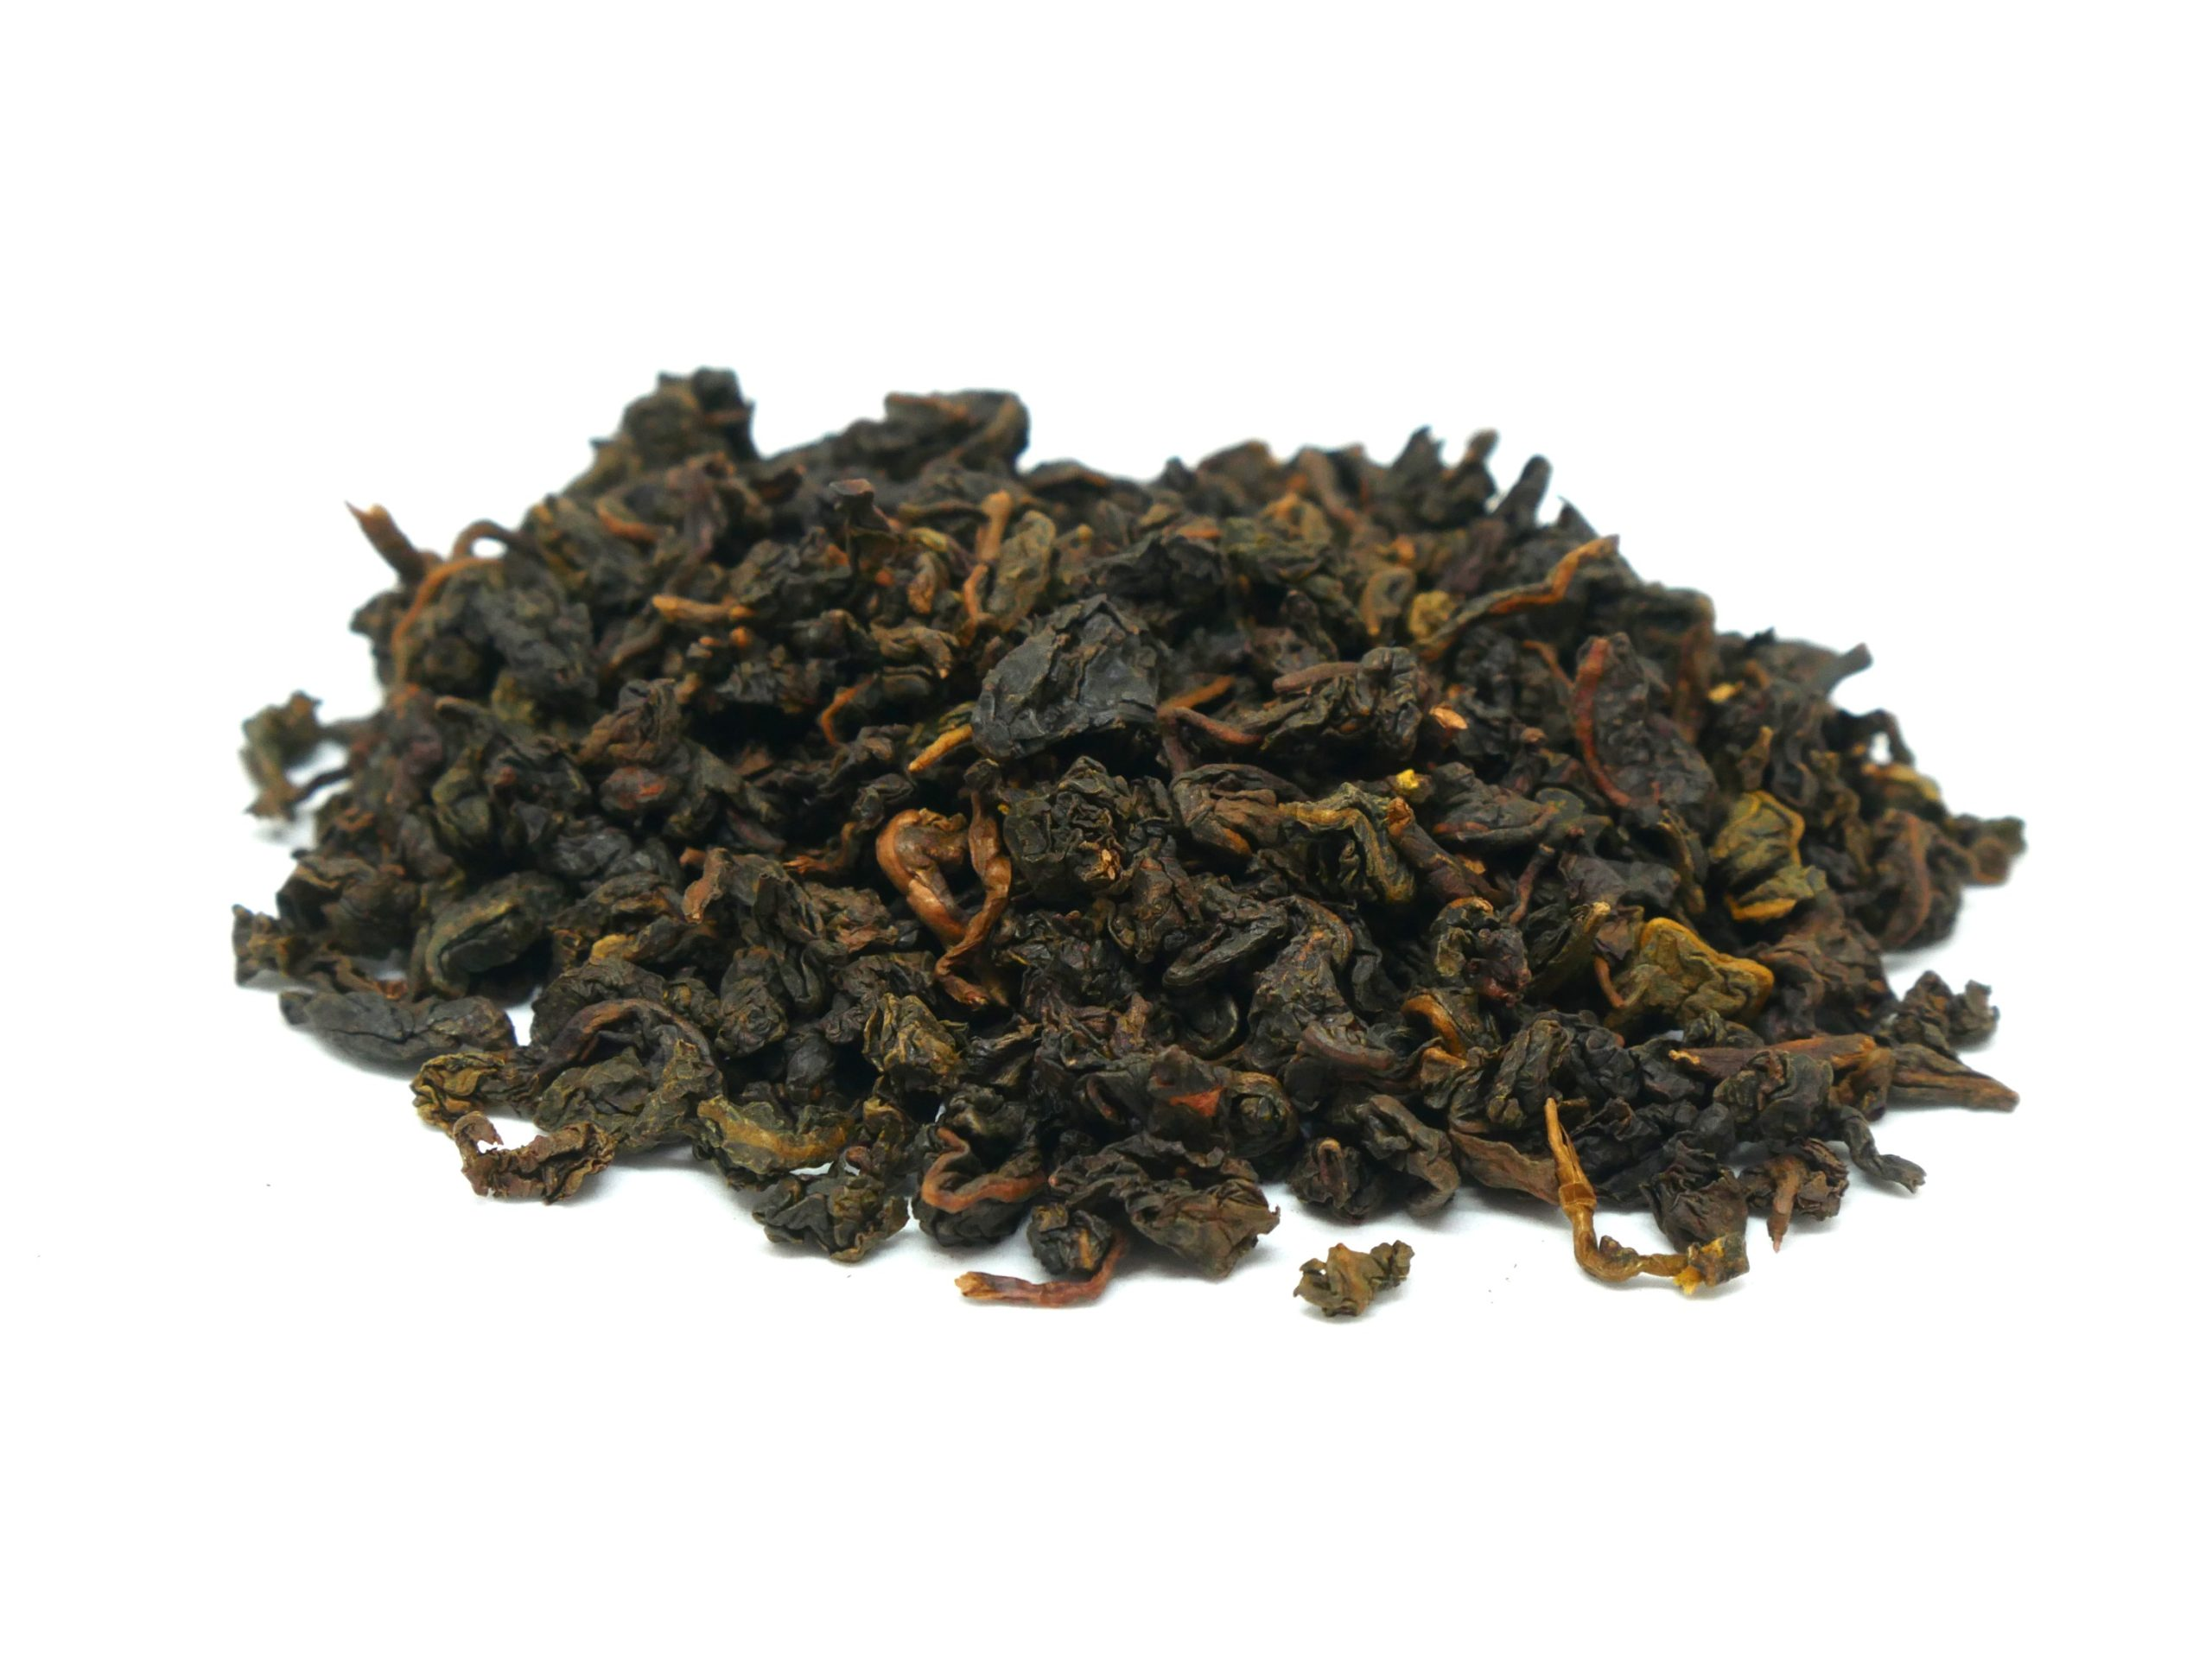 Order Oolong Tea from the Natural Spot